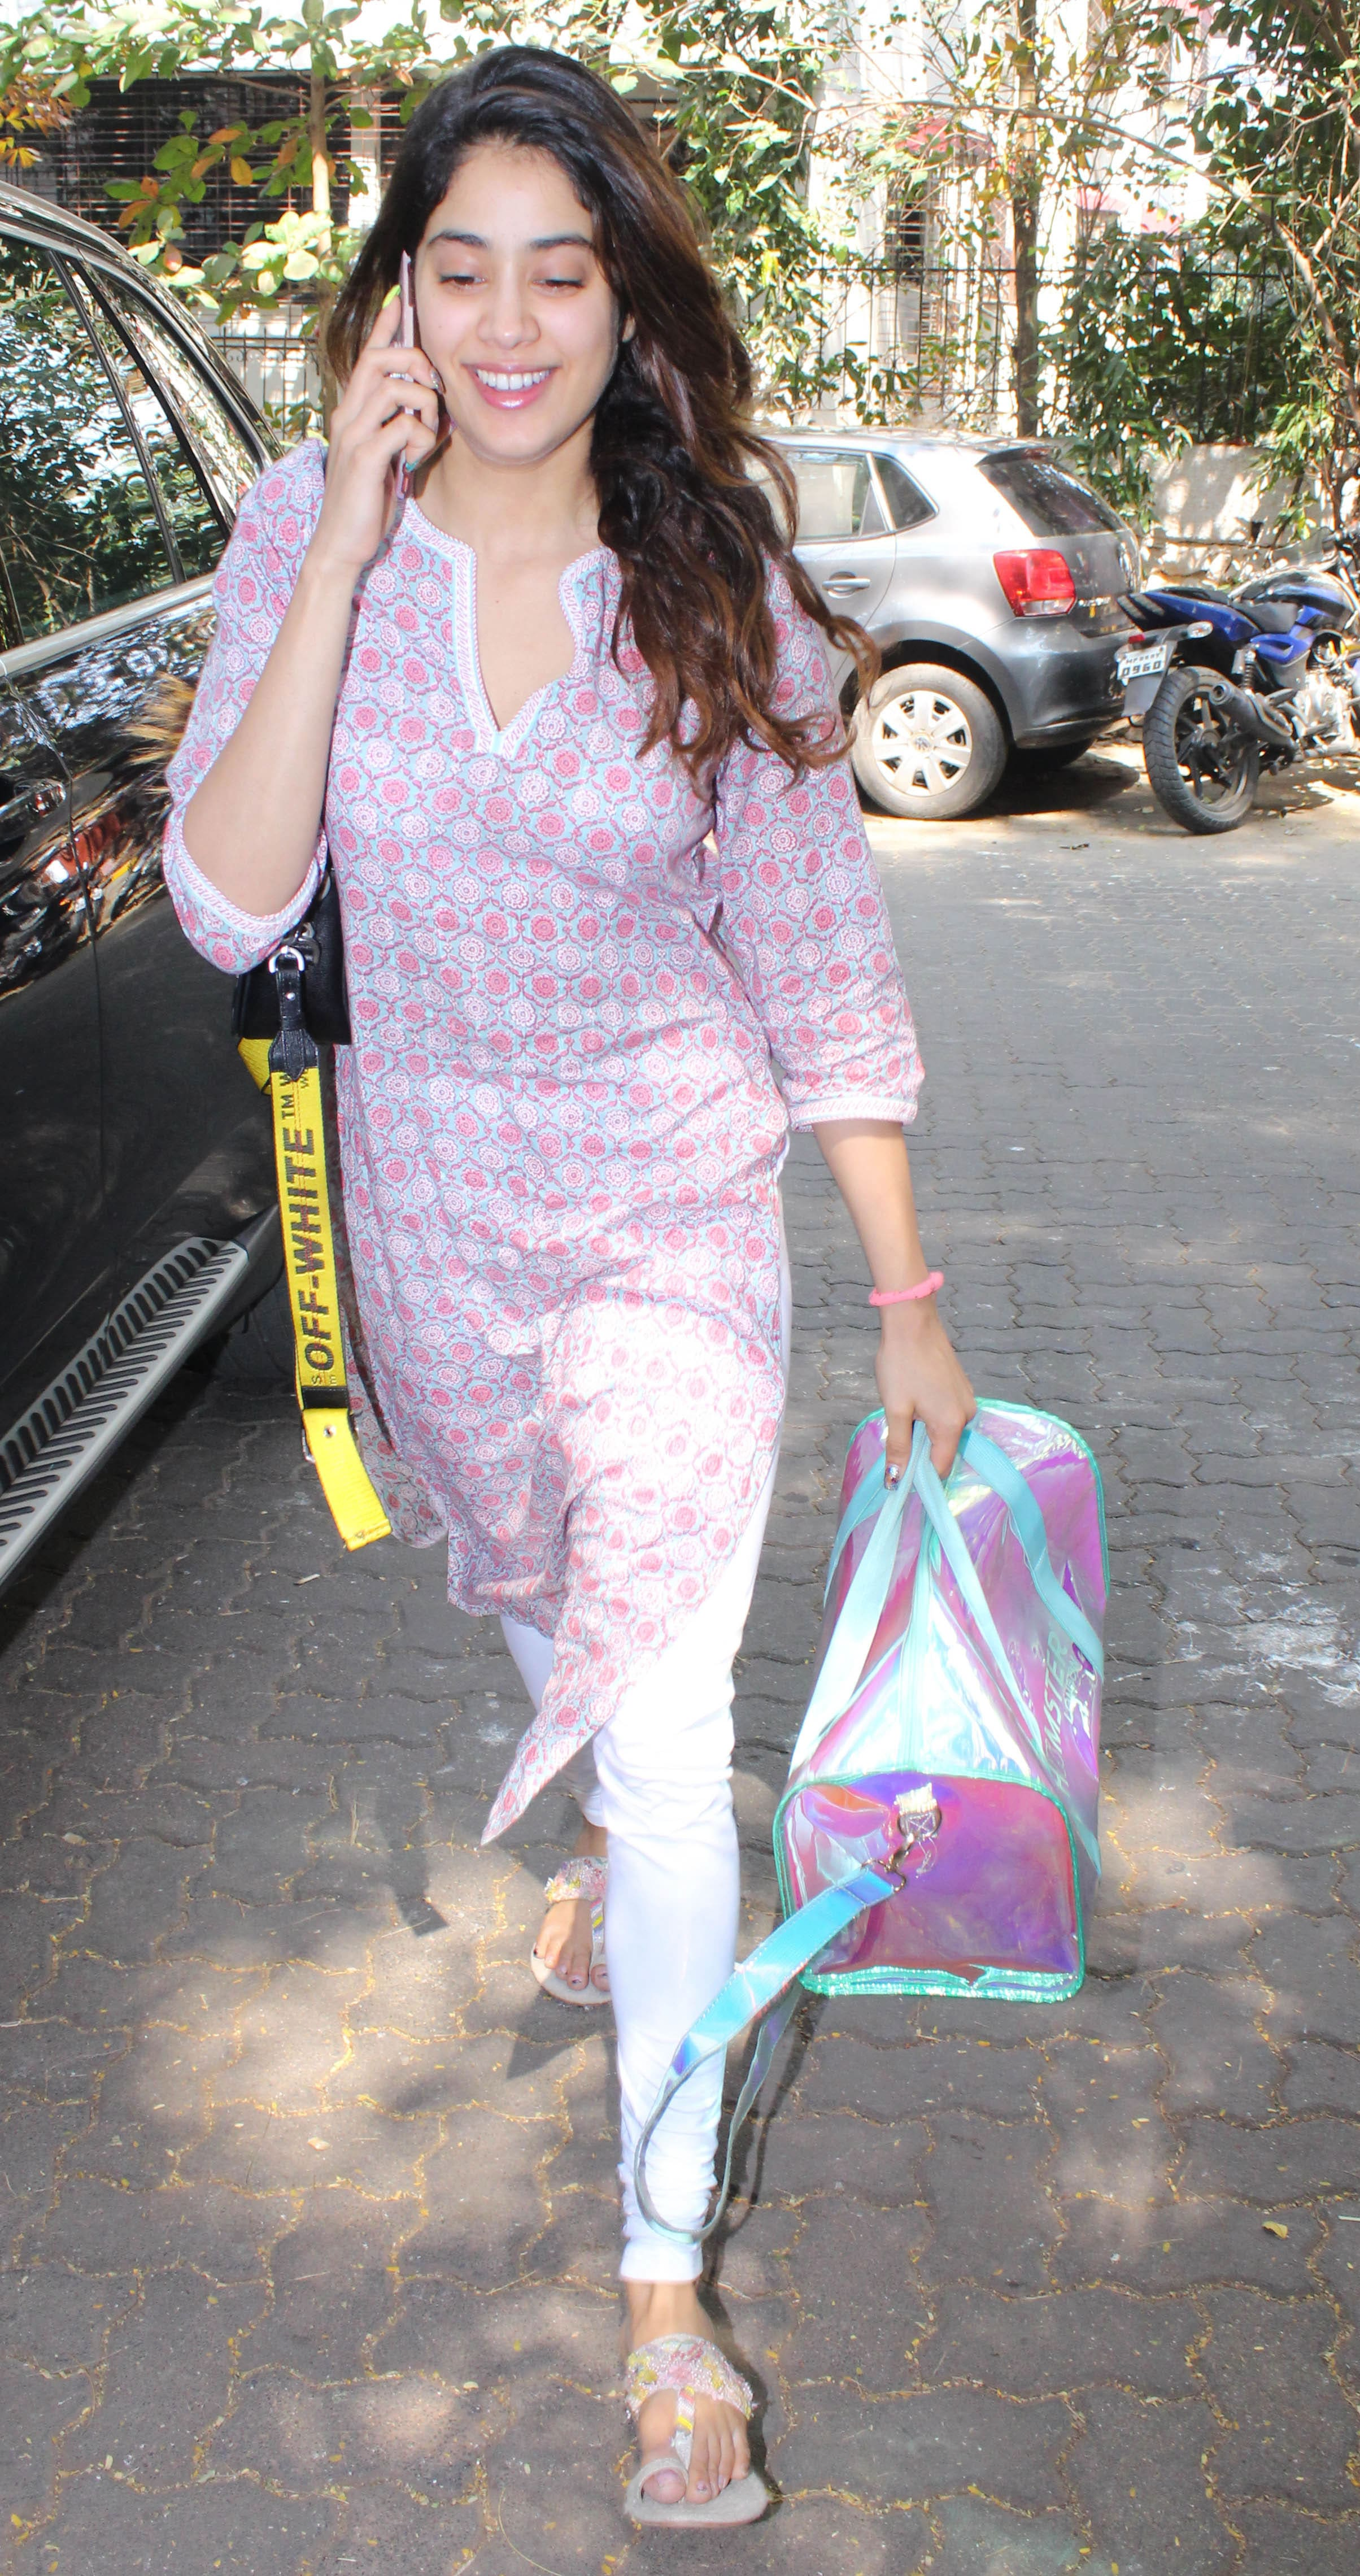 Who is Janhvi Kapoor talking to?